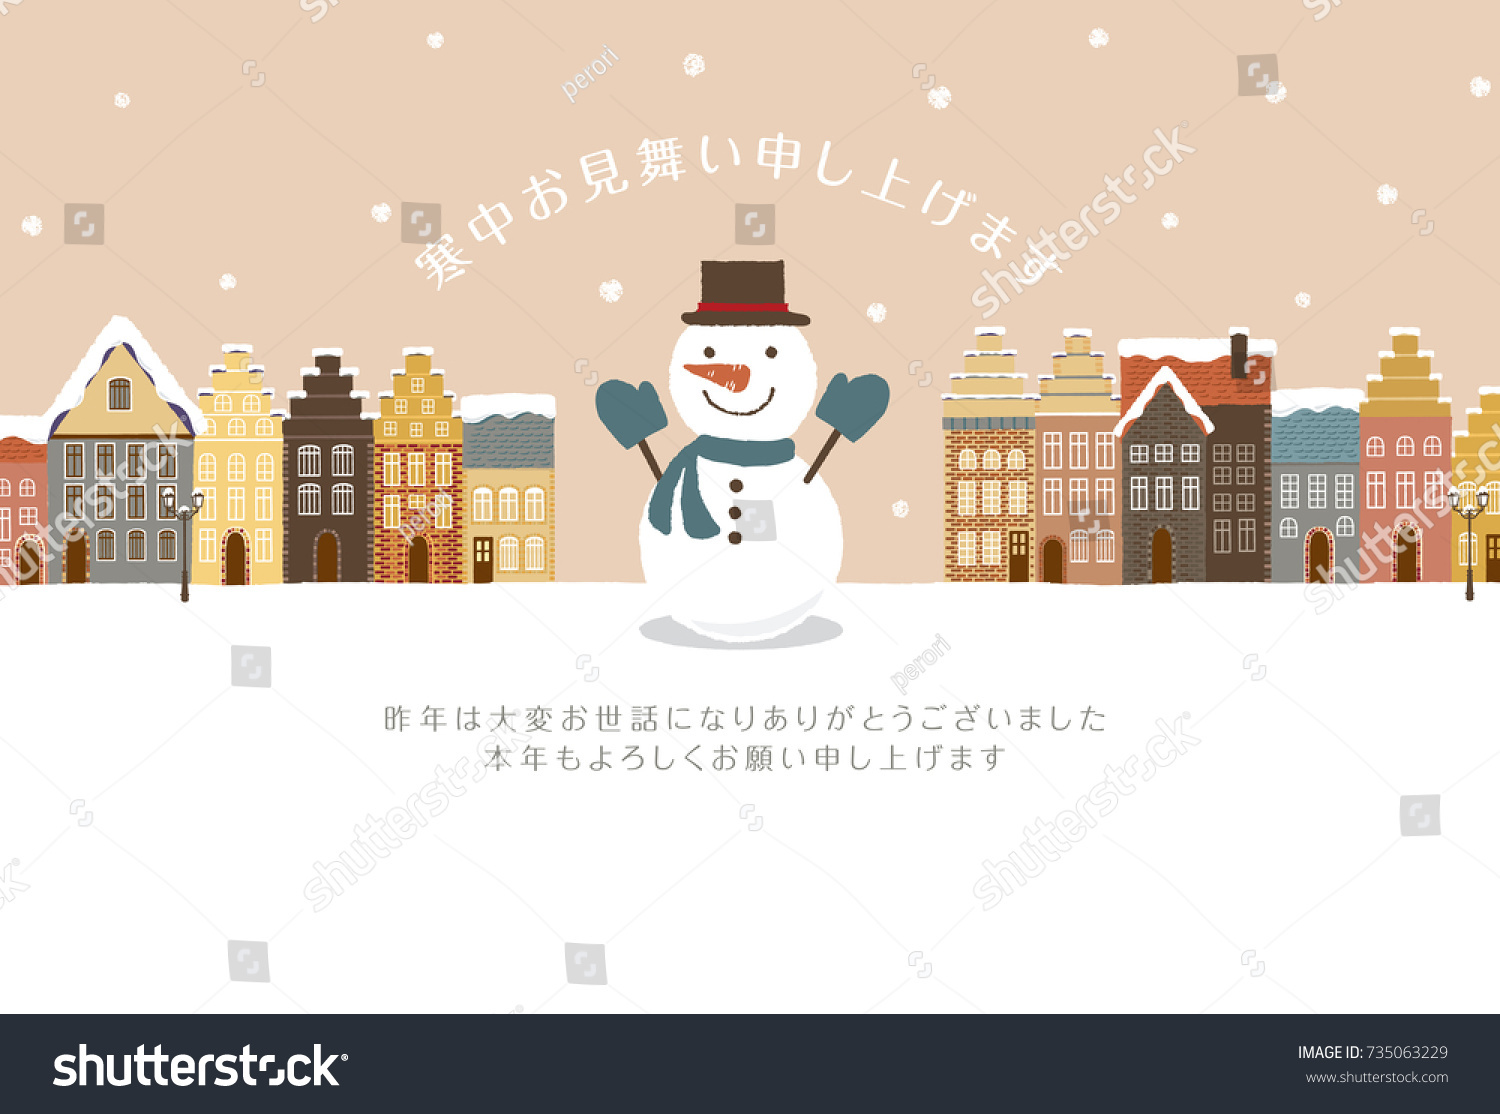 Midwinter greetings japanese translation i would stock vector mid winter greetings japanese translation is i would like to visit cold weather kristyandbryce Gallery